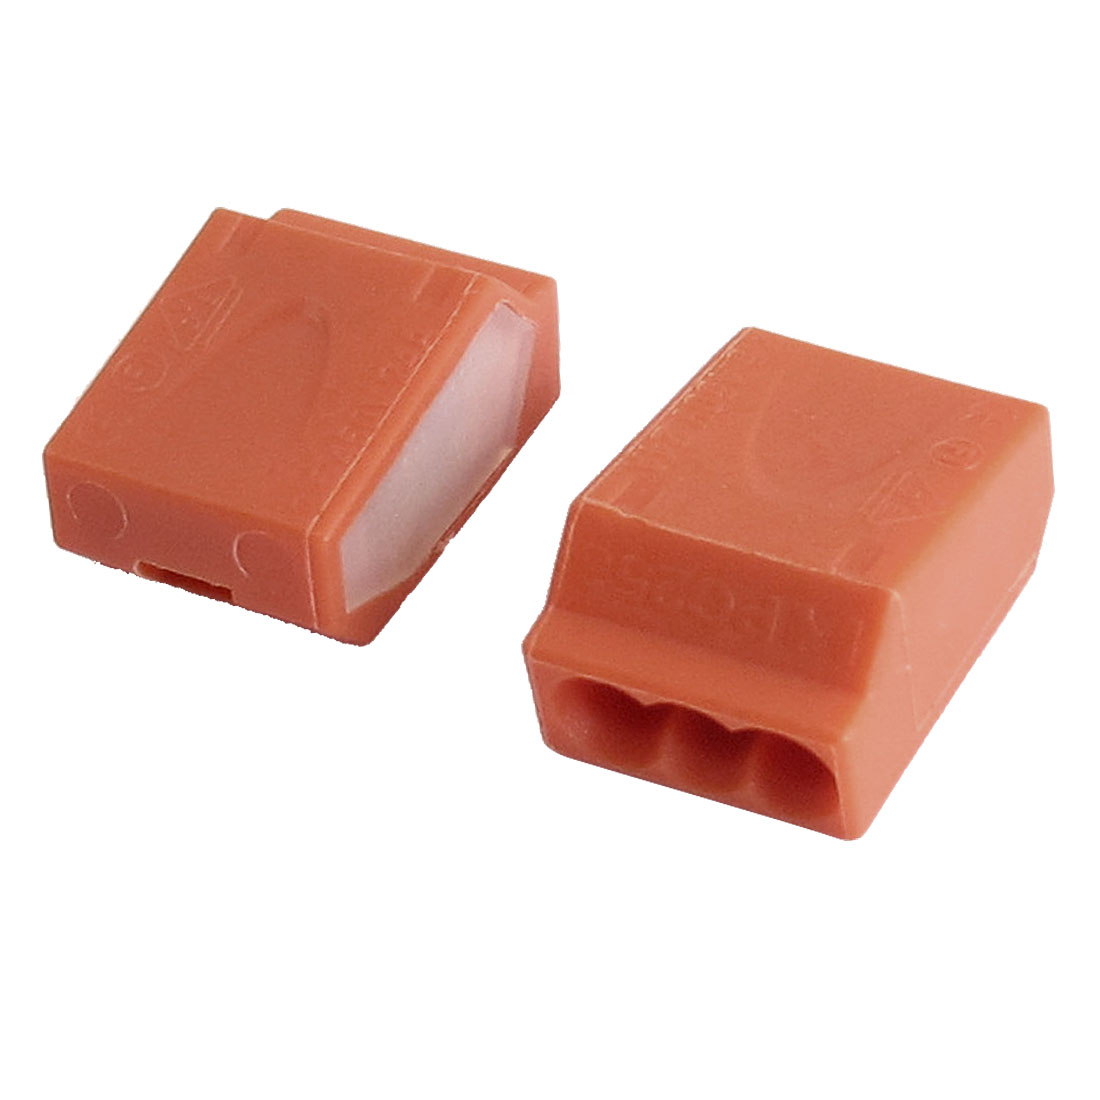 Orange Terminal Block Pluggable 12-22AWG 3 Contacts Positions 2 Pcs